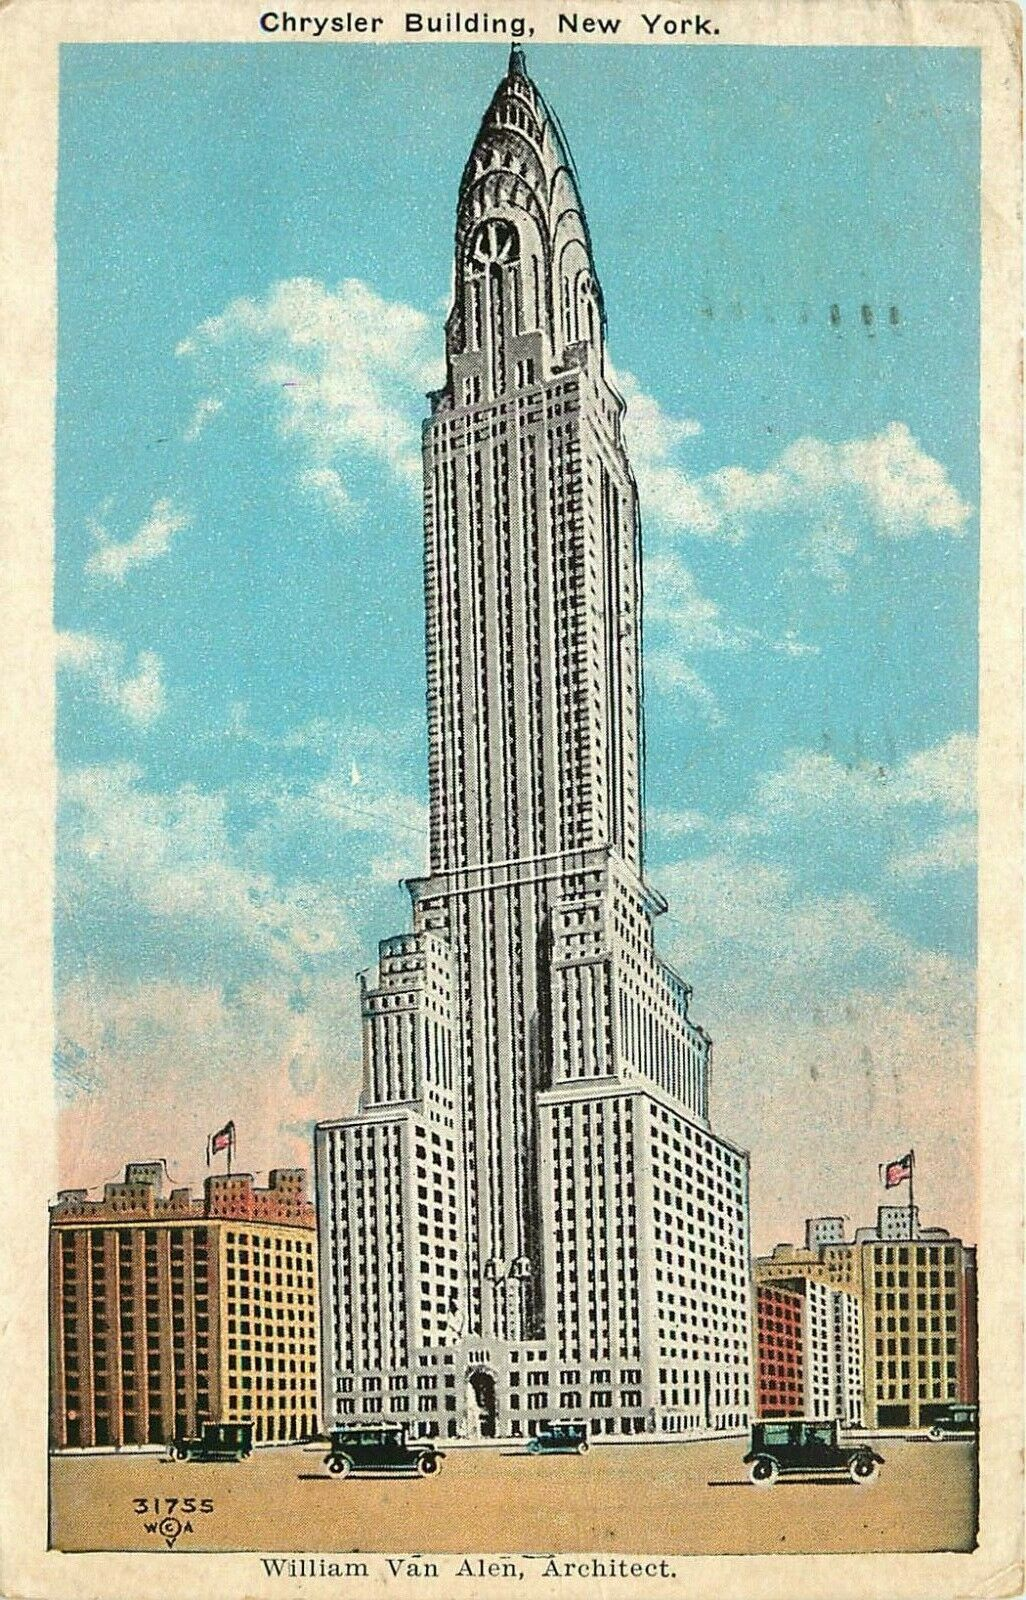 New York City Ny Chrysler Building 1934 White Border Vintage Postcard E7590 Ebay Chrysler Building New York City Ny New York City